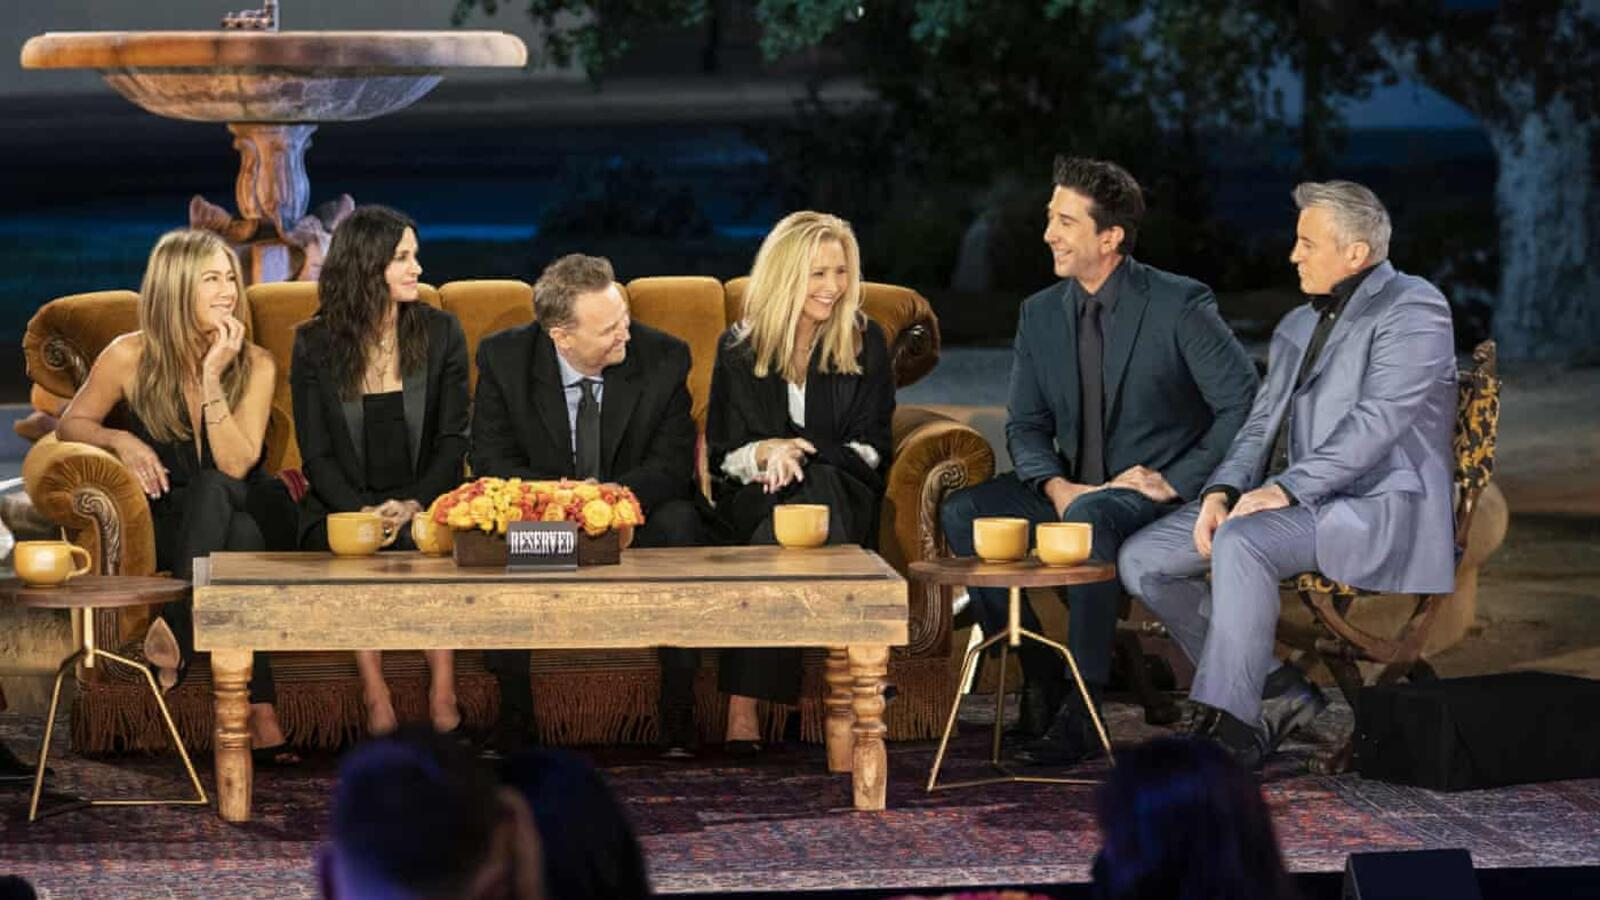 Filming The 'Friends' Reunion Was Full Of 'Melancholy' For The Cast